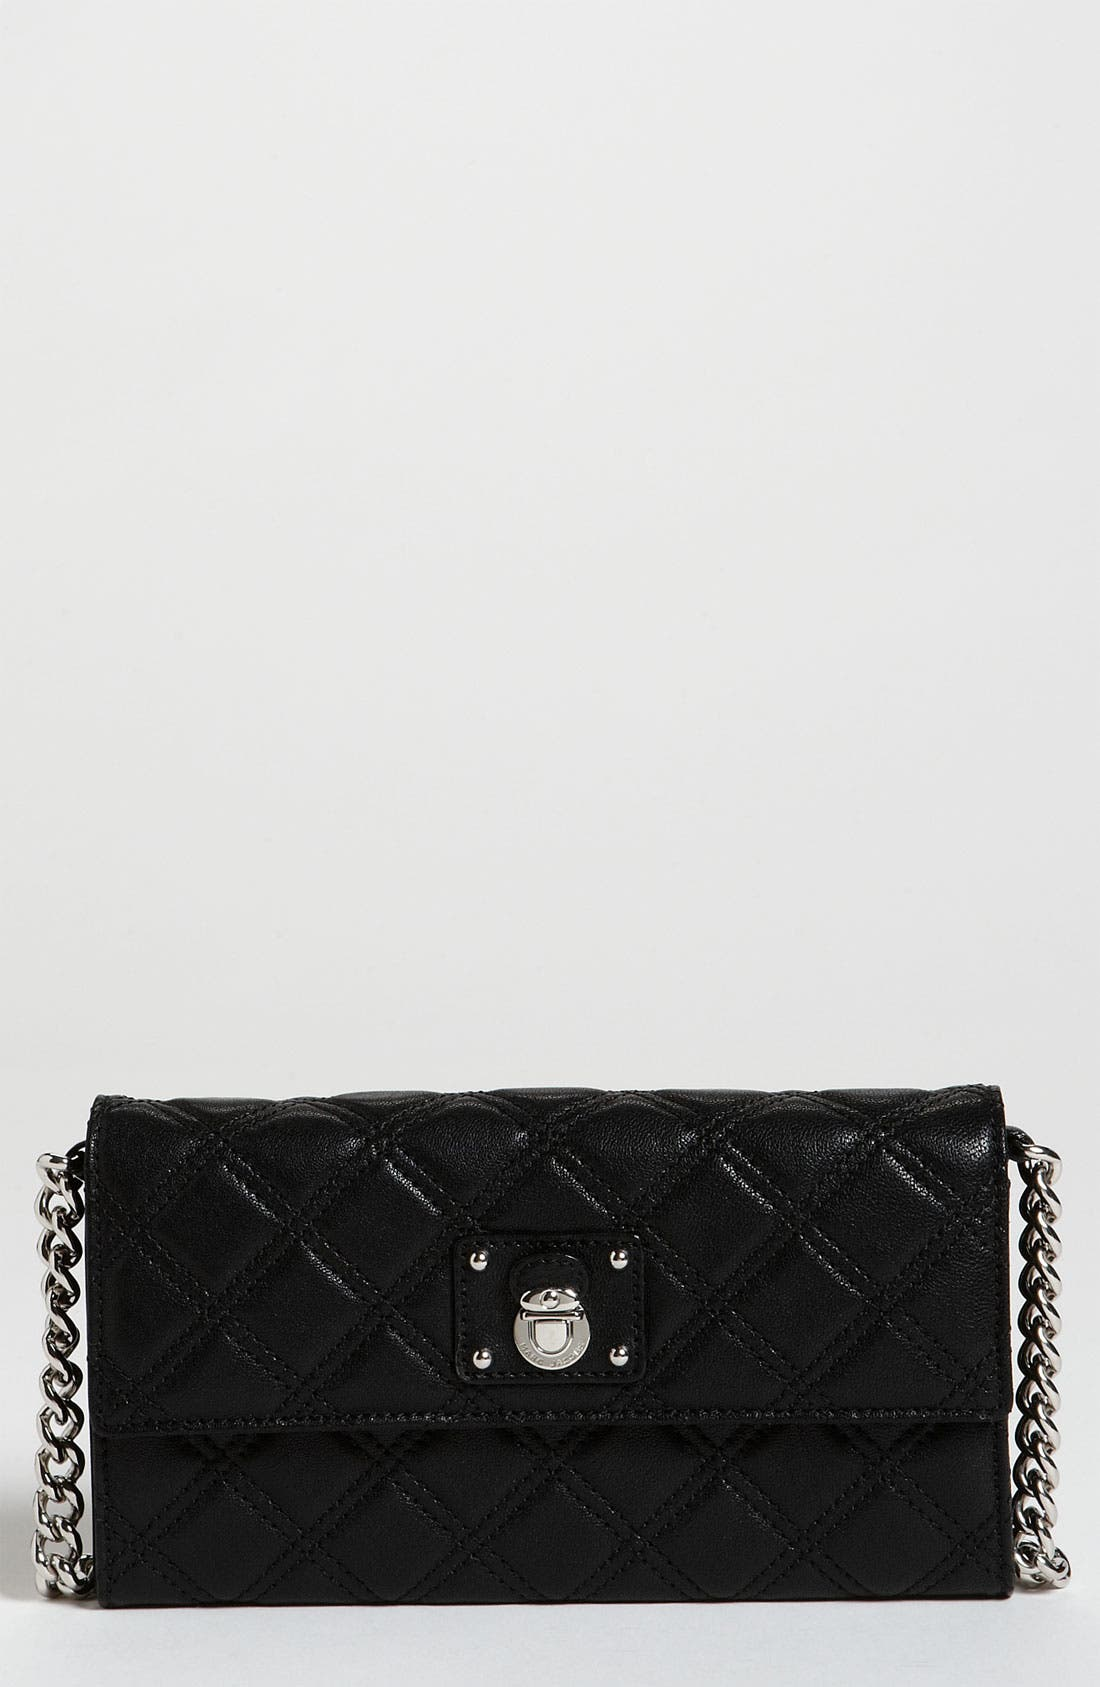 Alternate Image 1 Selected - MARC JACOBS 'Quilting Ginger' Leather Shoulder Bag